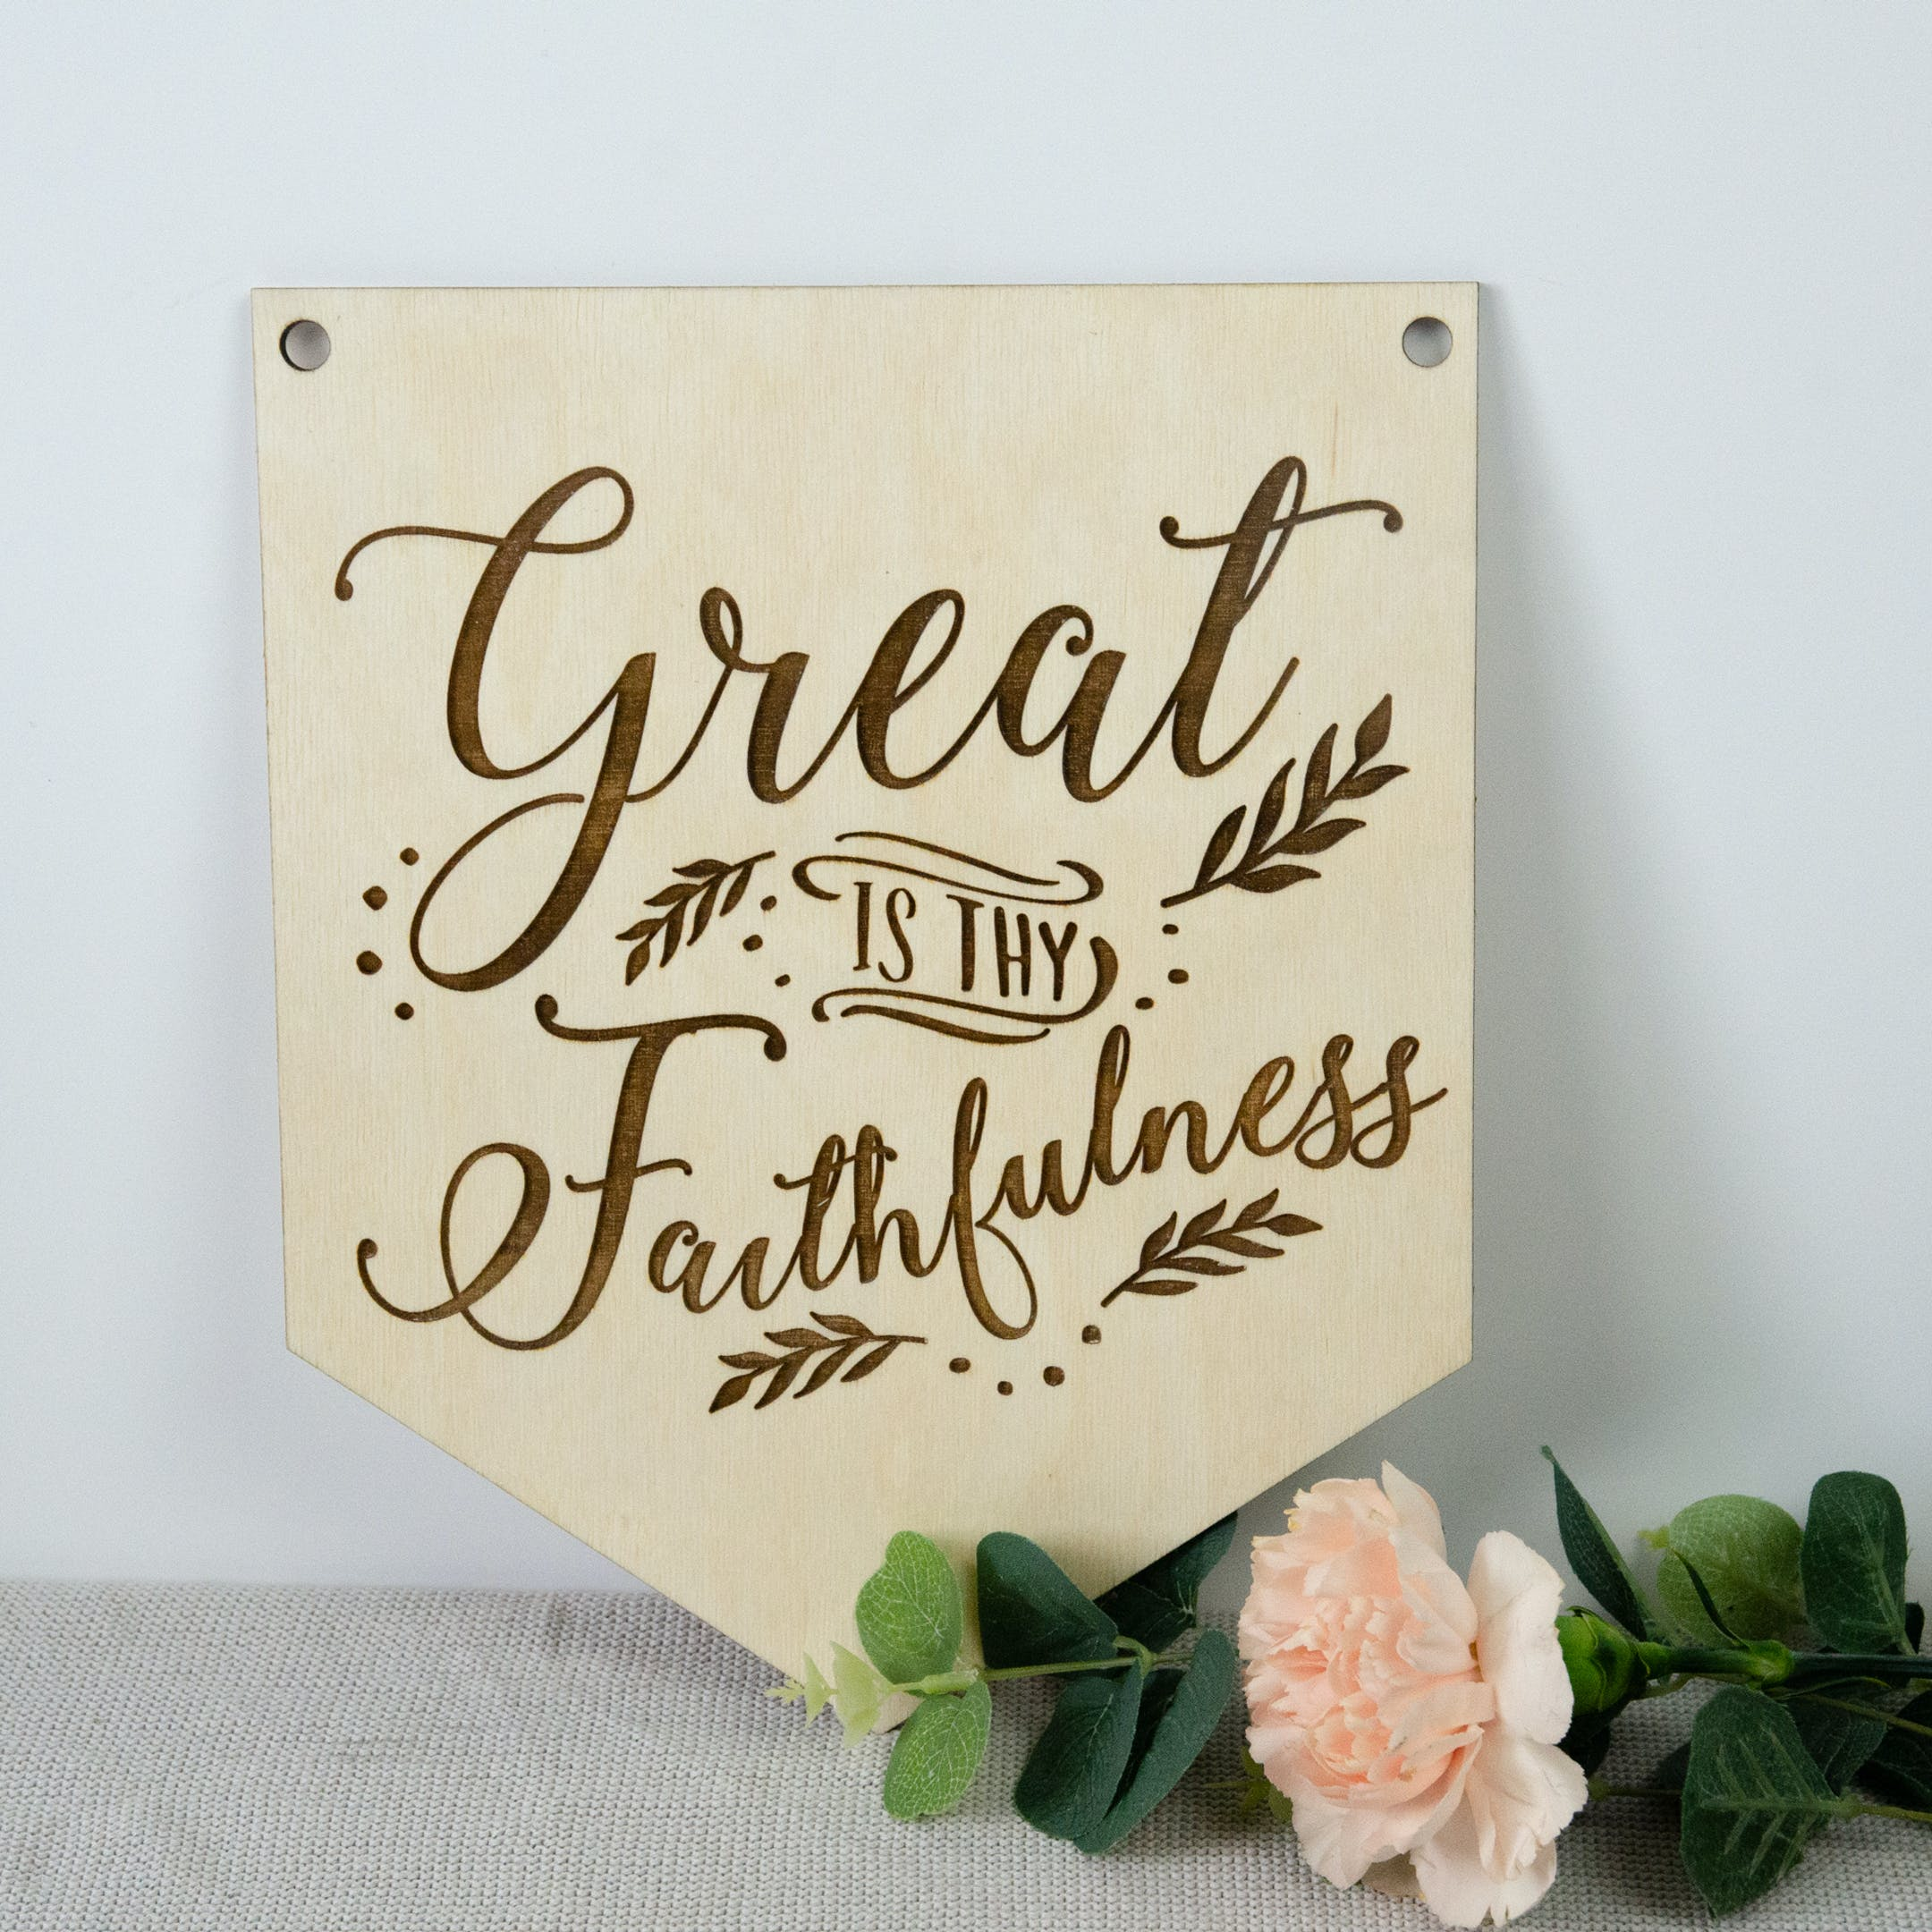 Wooden Hymn Banner - Great Is Thy Faithfulness - Birch and Tides